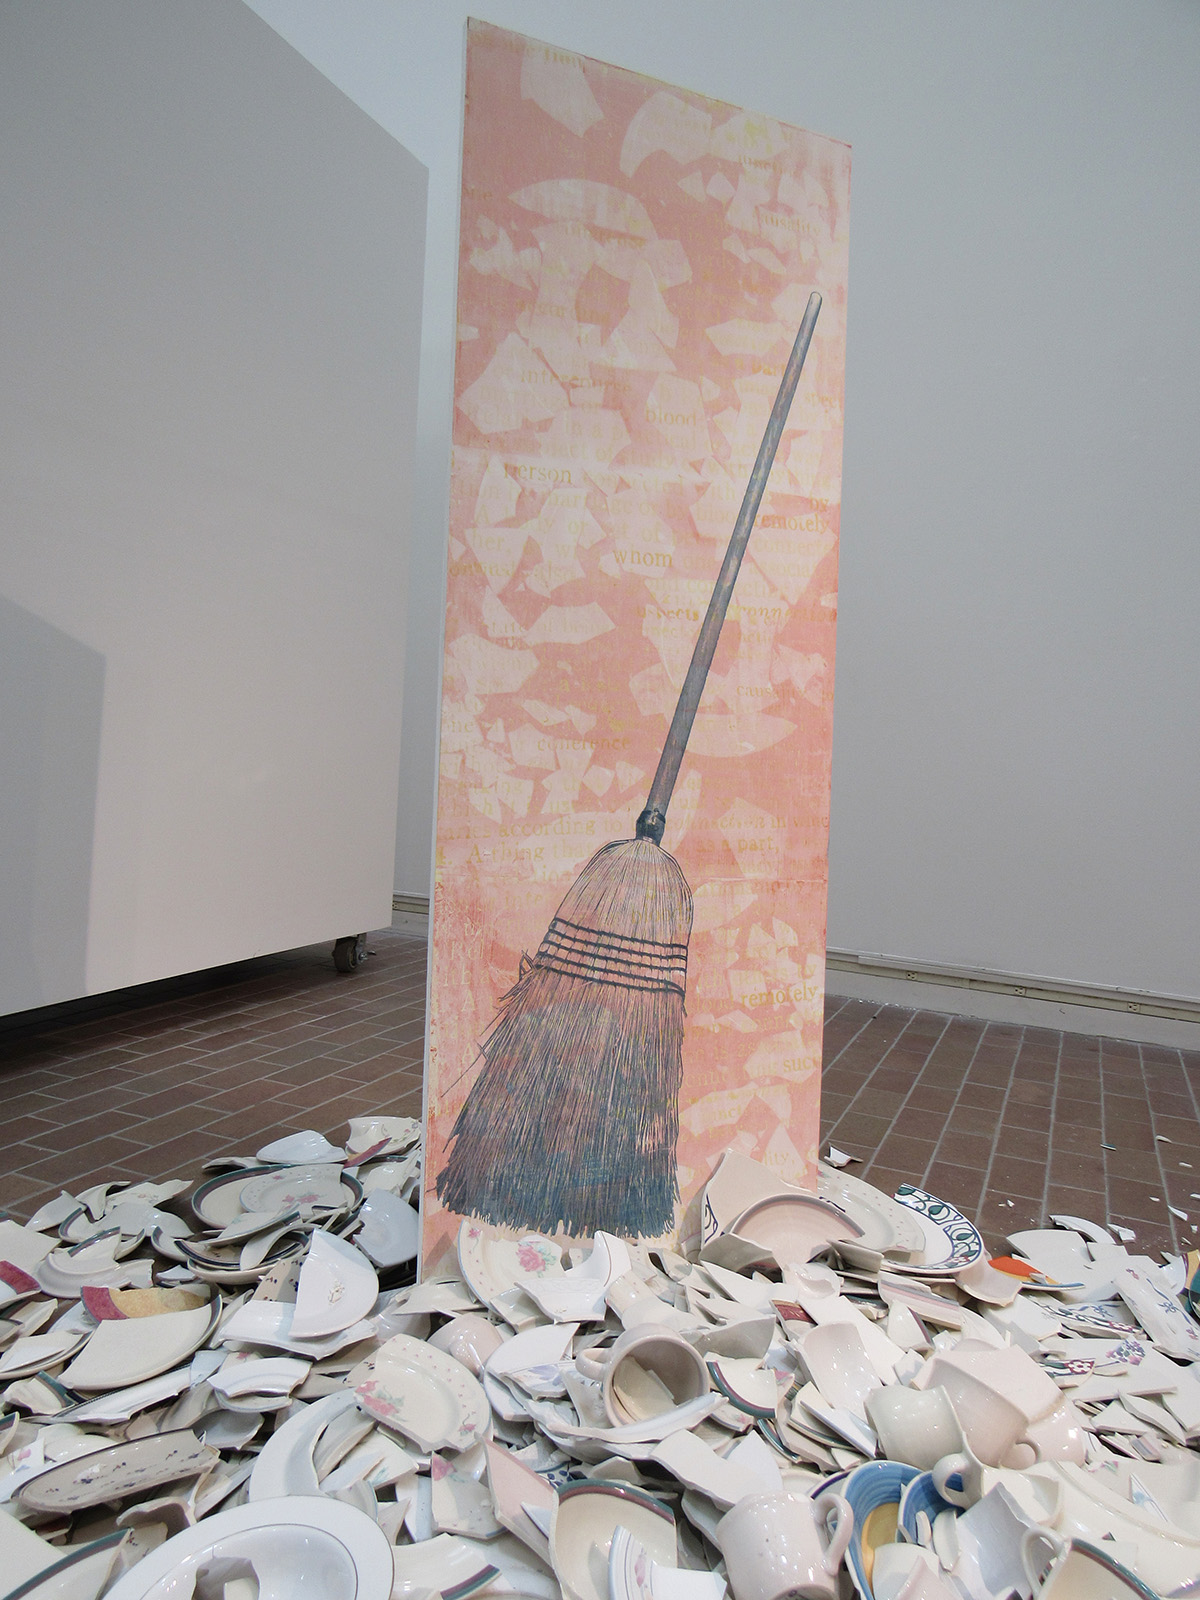 A large-scale print of a mop next to broken dishware in a gallery.